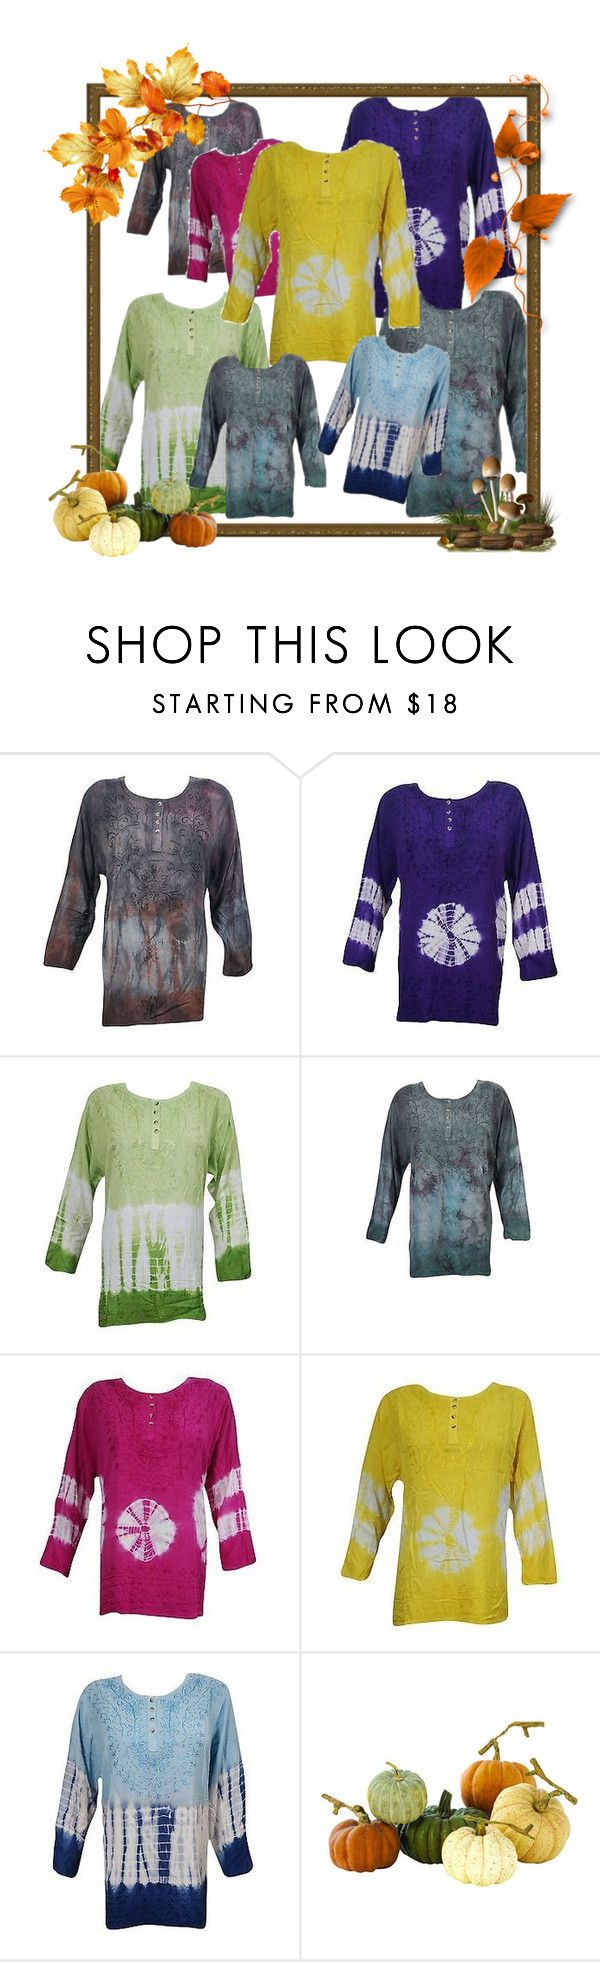 Boho Tie Dye Blouse Tops by baydeals on Polyvore featuring Home Decorators Collection  http://stores.ebay.com/mogulgallery/TOPS-BLOUSES-/_i.html?_fsub=901626119&_sid=3781319&_trksid=p4634.c0.m322